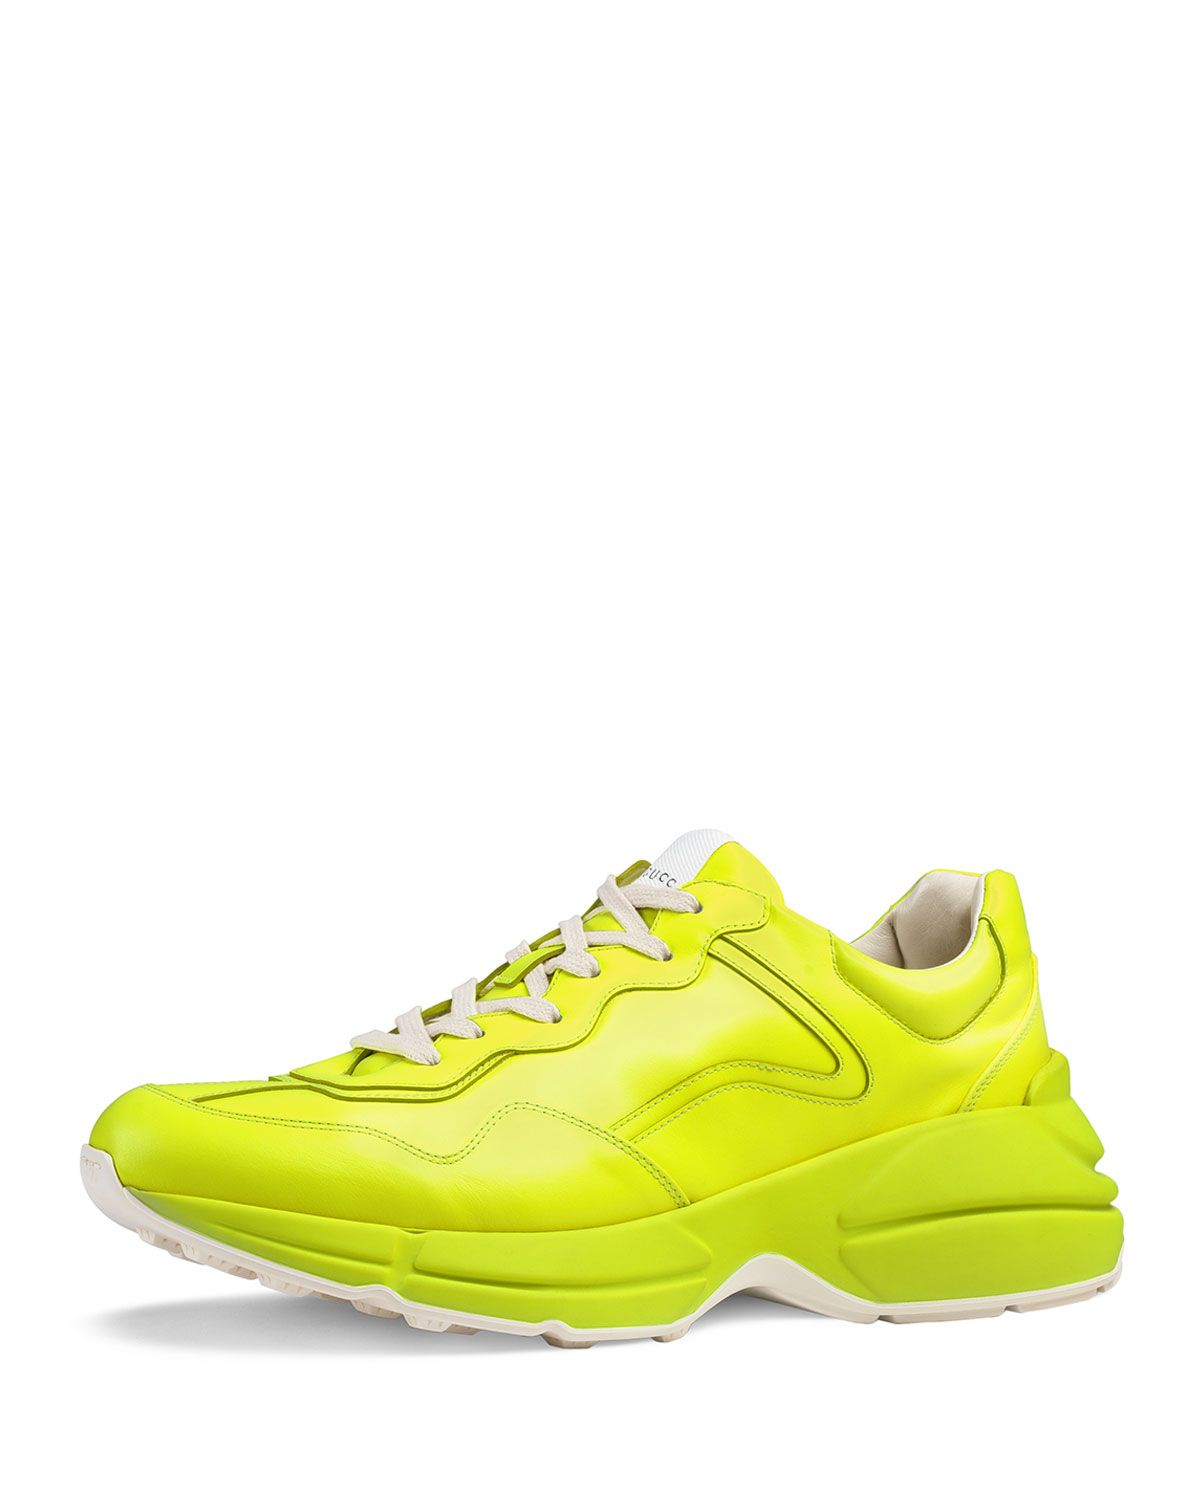 fed90c625 GUCCI MEN'S RHYTON FLUORESCENT LEATHER SNEAKERS. #gucci #shoes ...